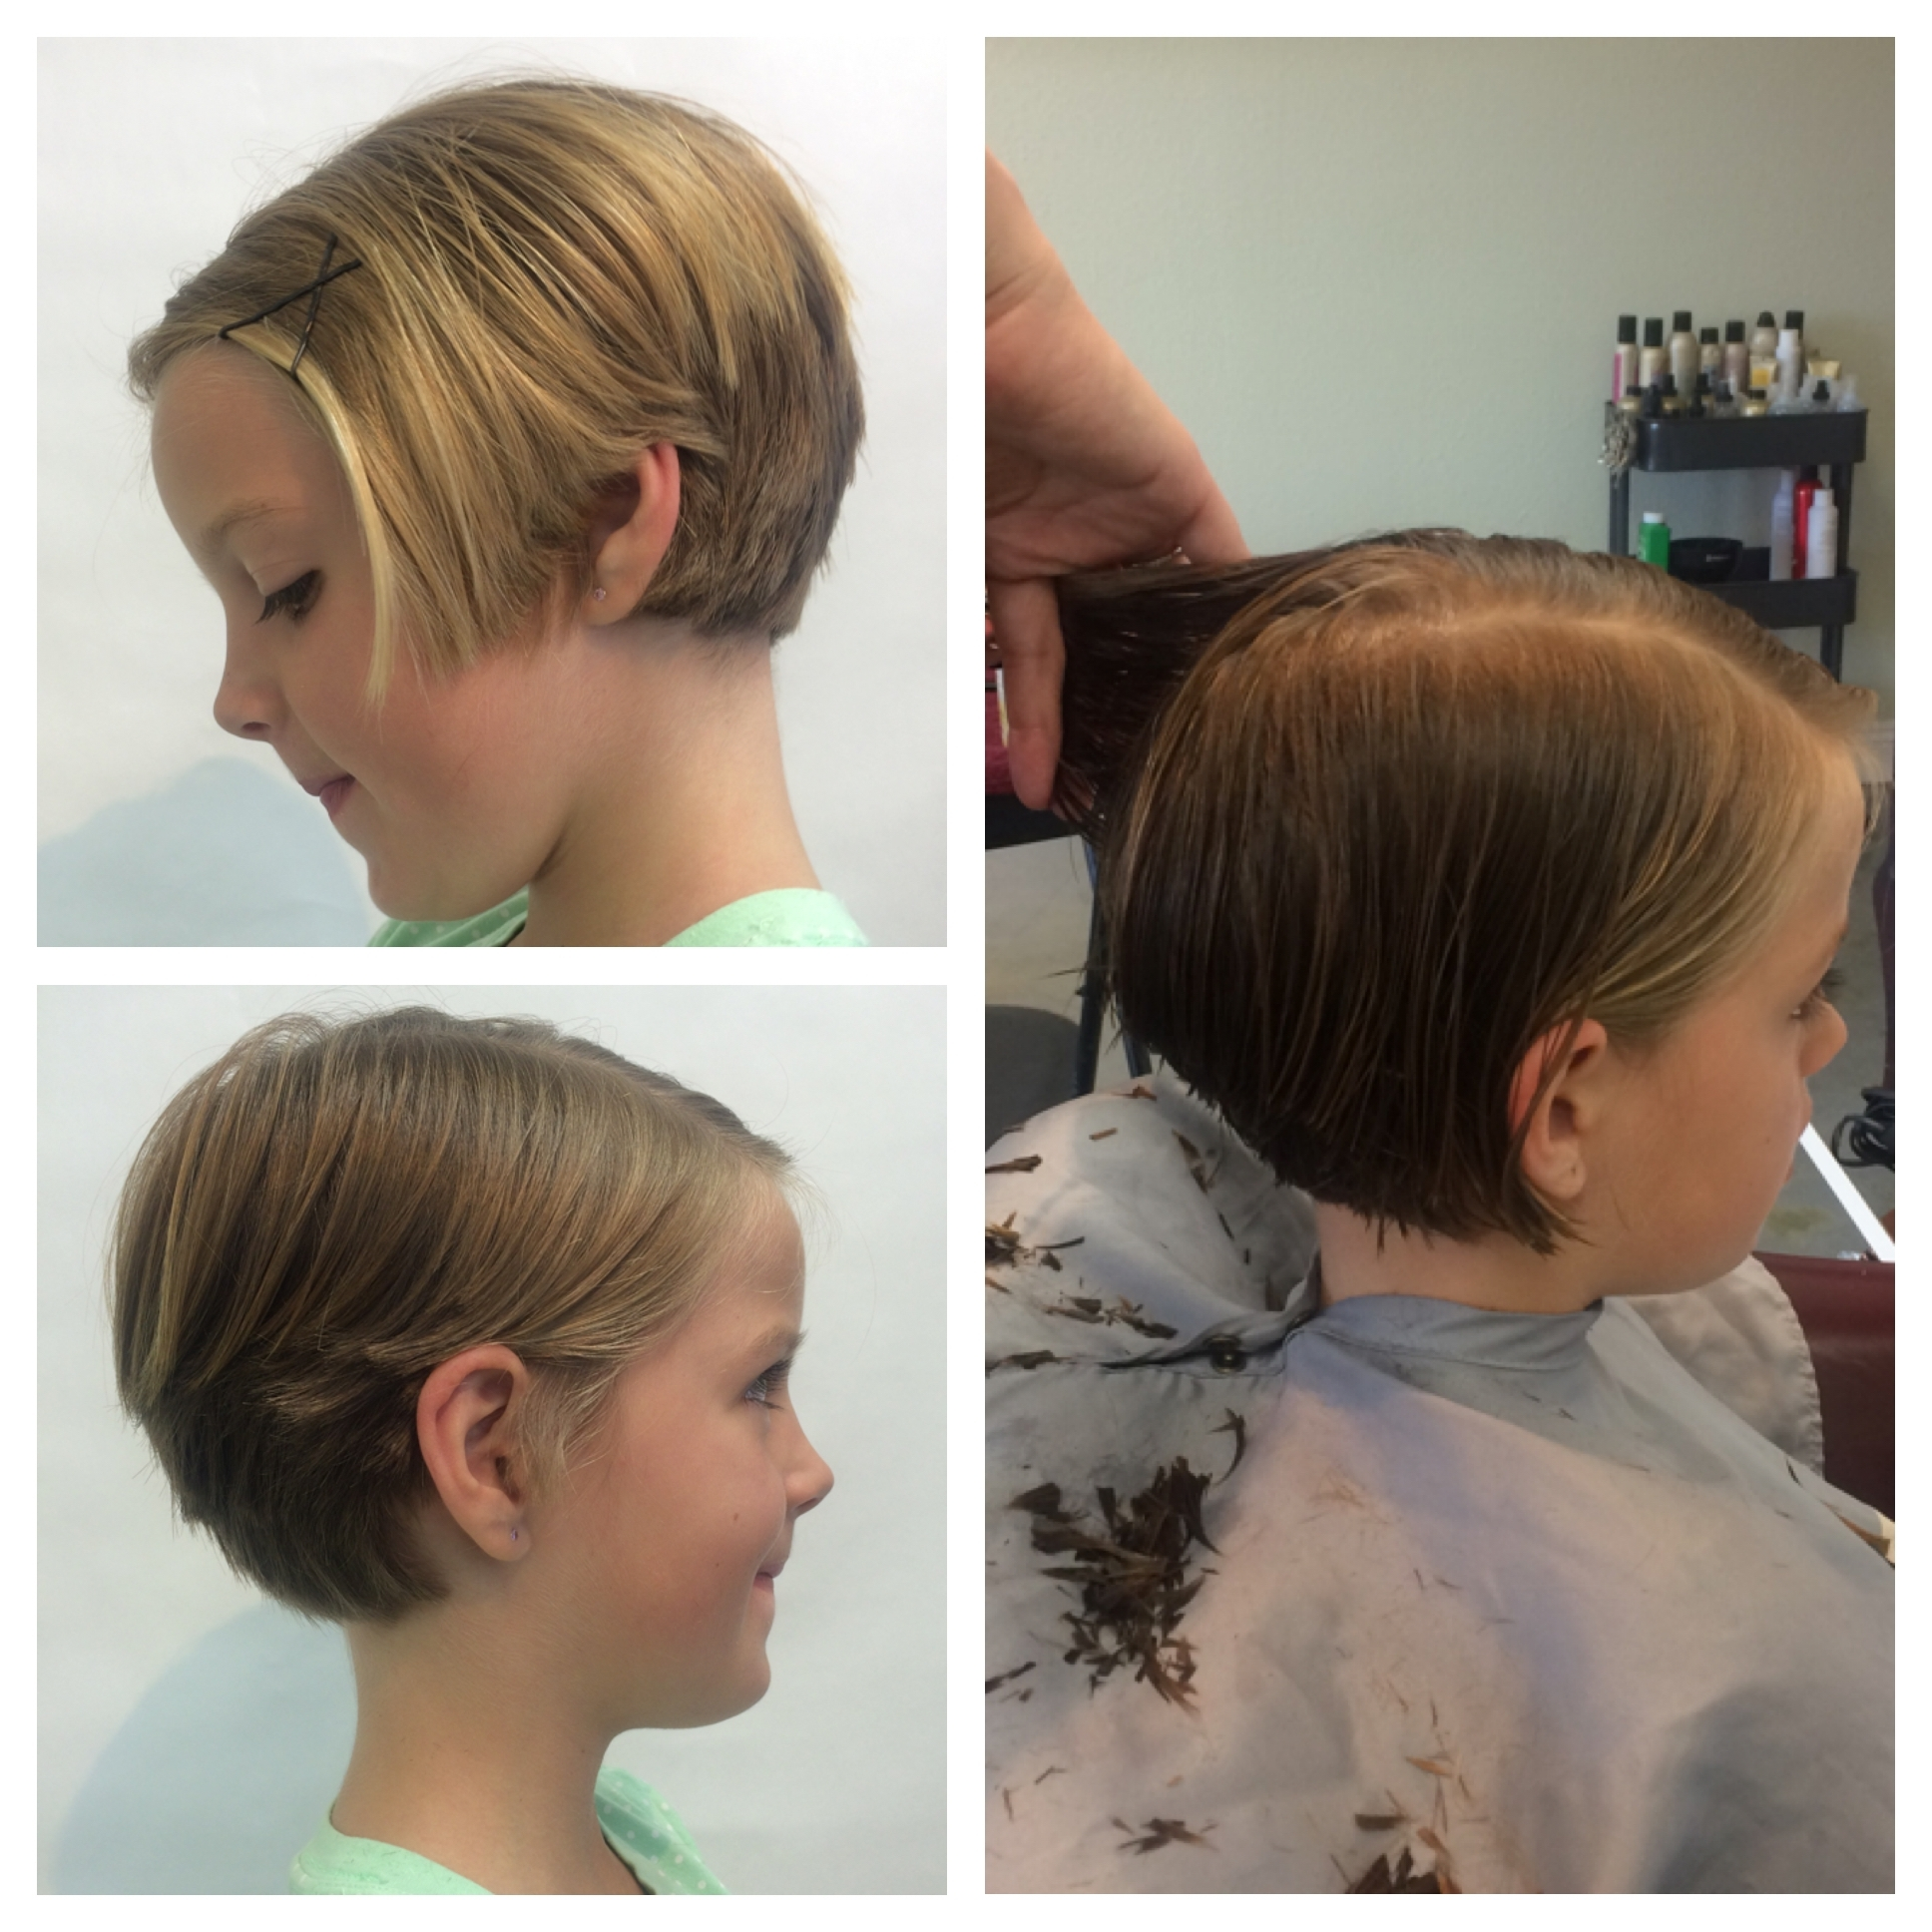 Child Pixie Hair Cut Girls Pixie Hairstyle Cute Short Hair In Current Pixie Hairstyles For Little Girls (View 3 of 15)